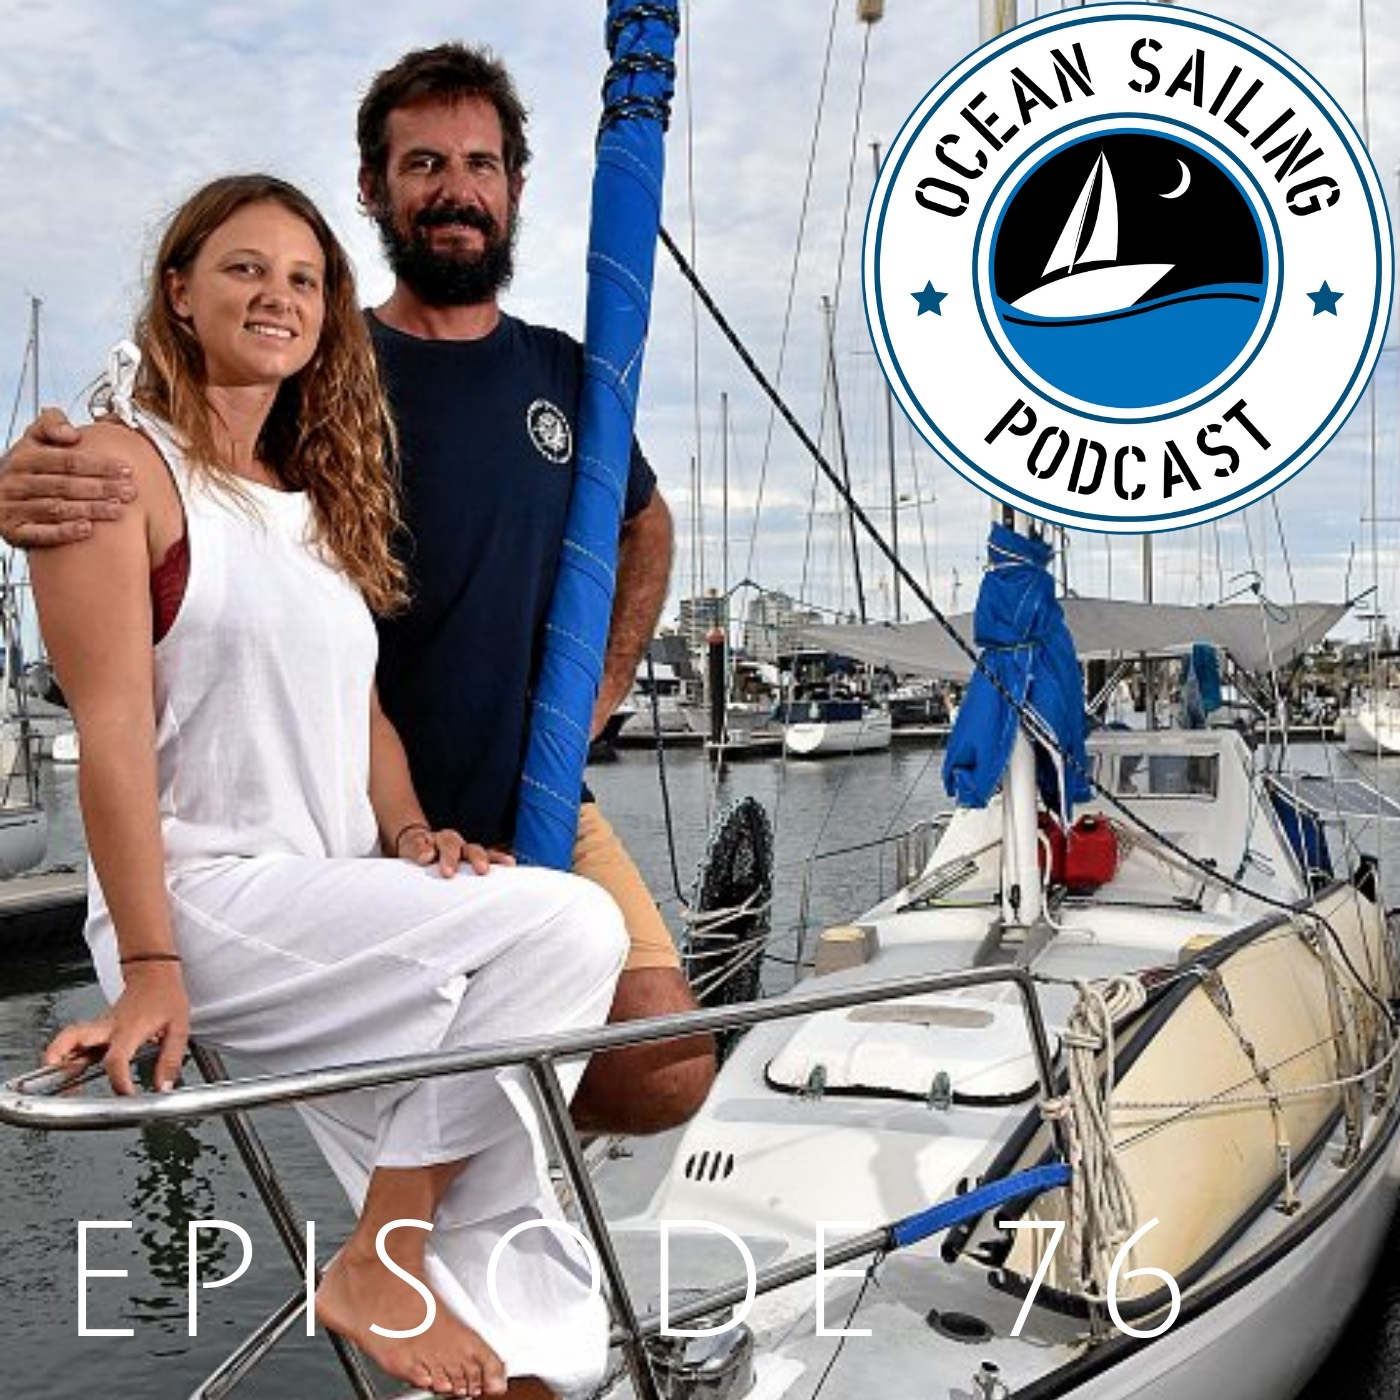 Troy and Pascale Episode 76 Free range sailing